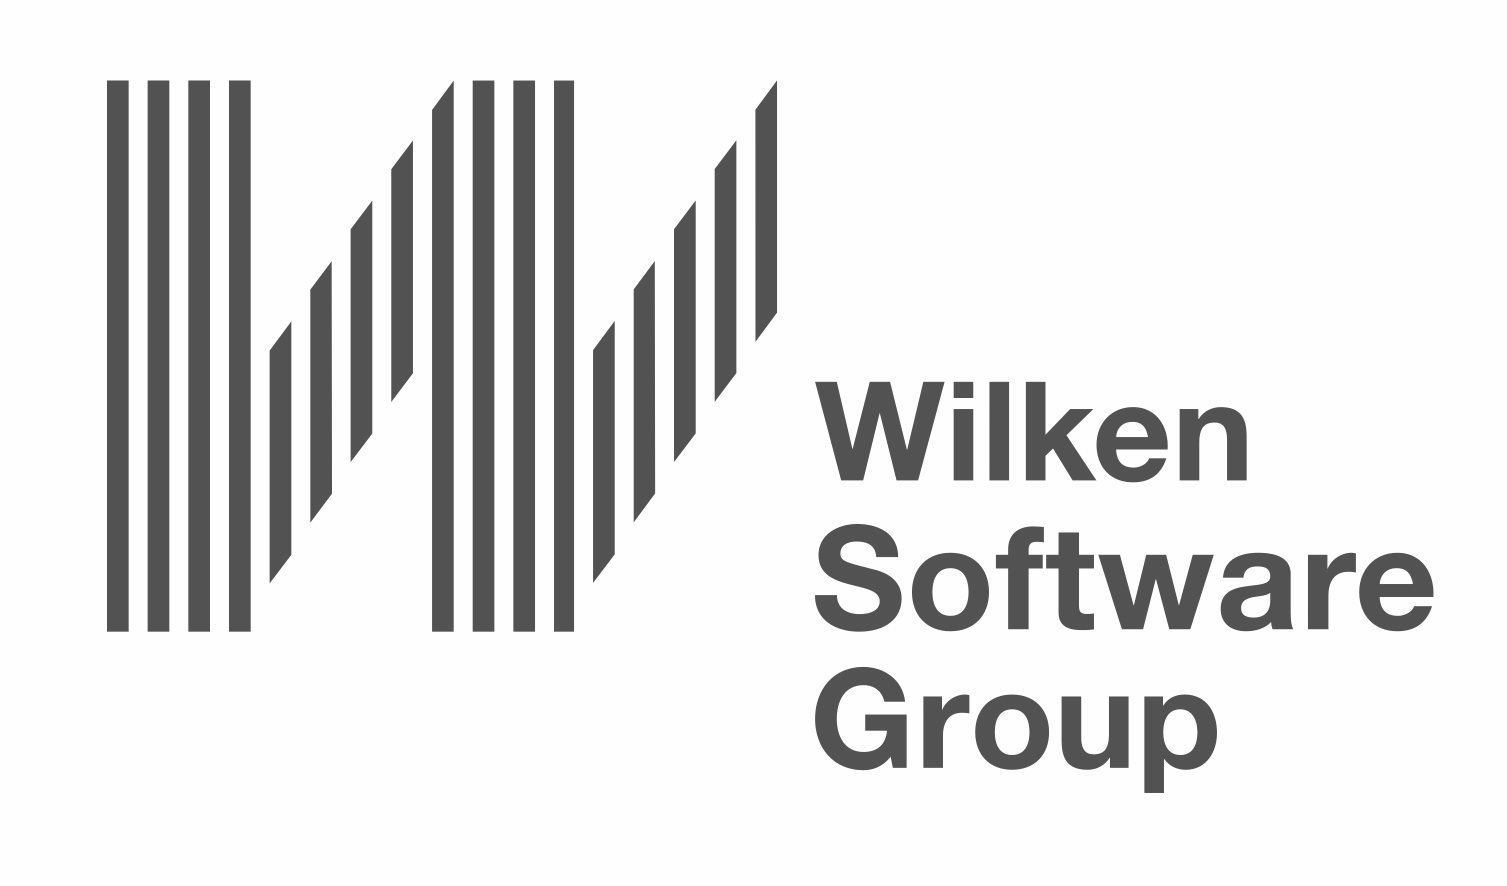 Wilken Software Group